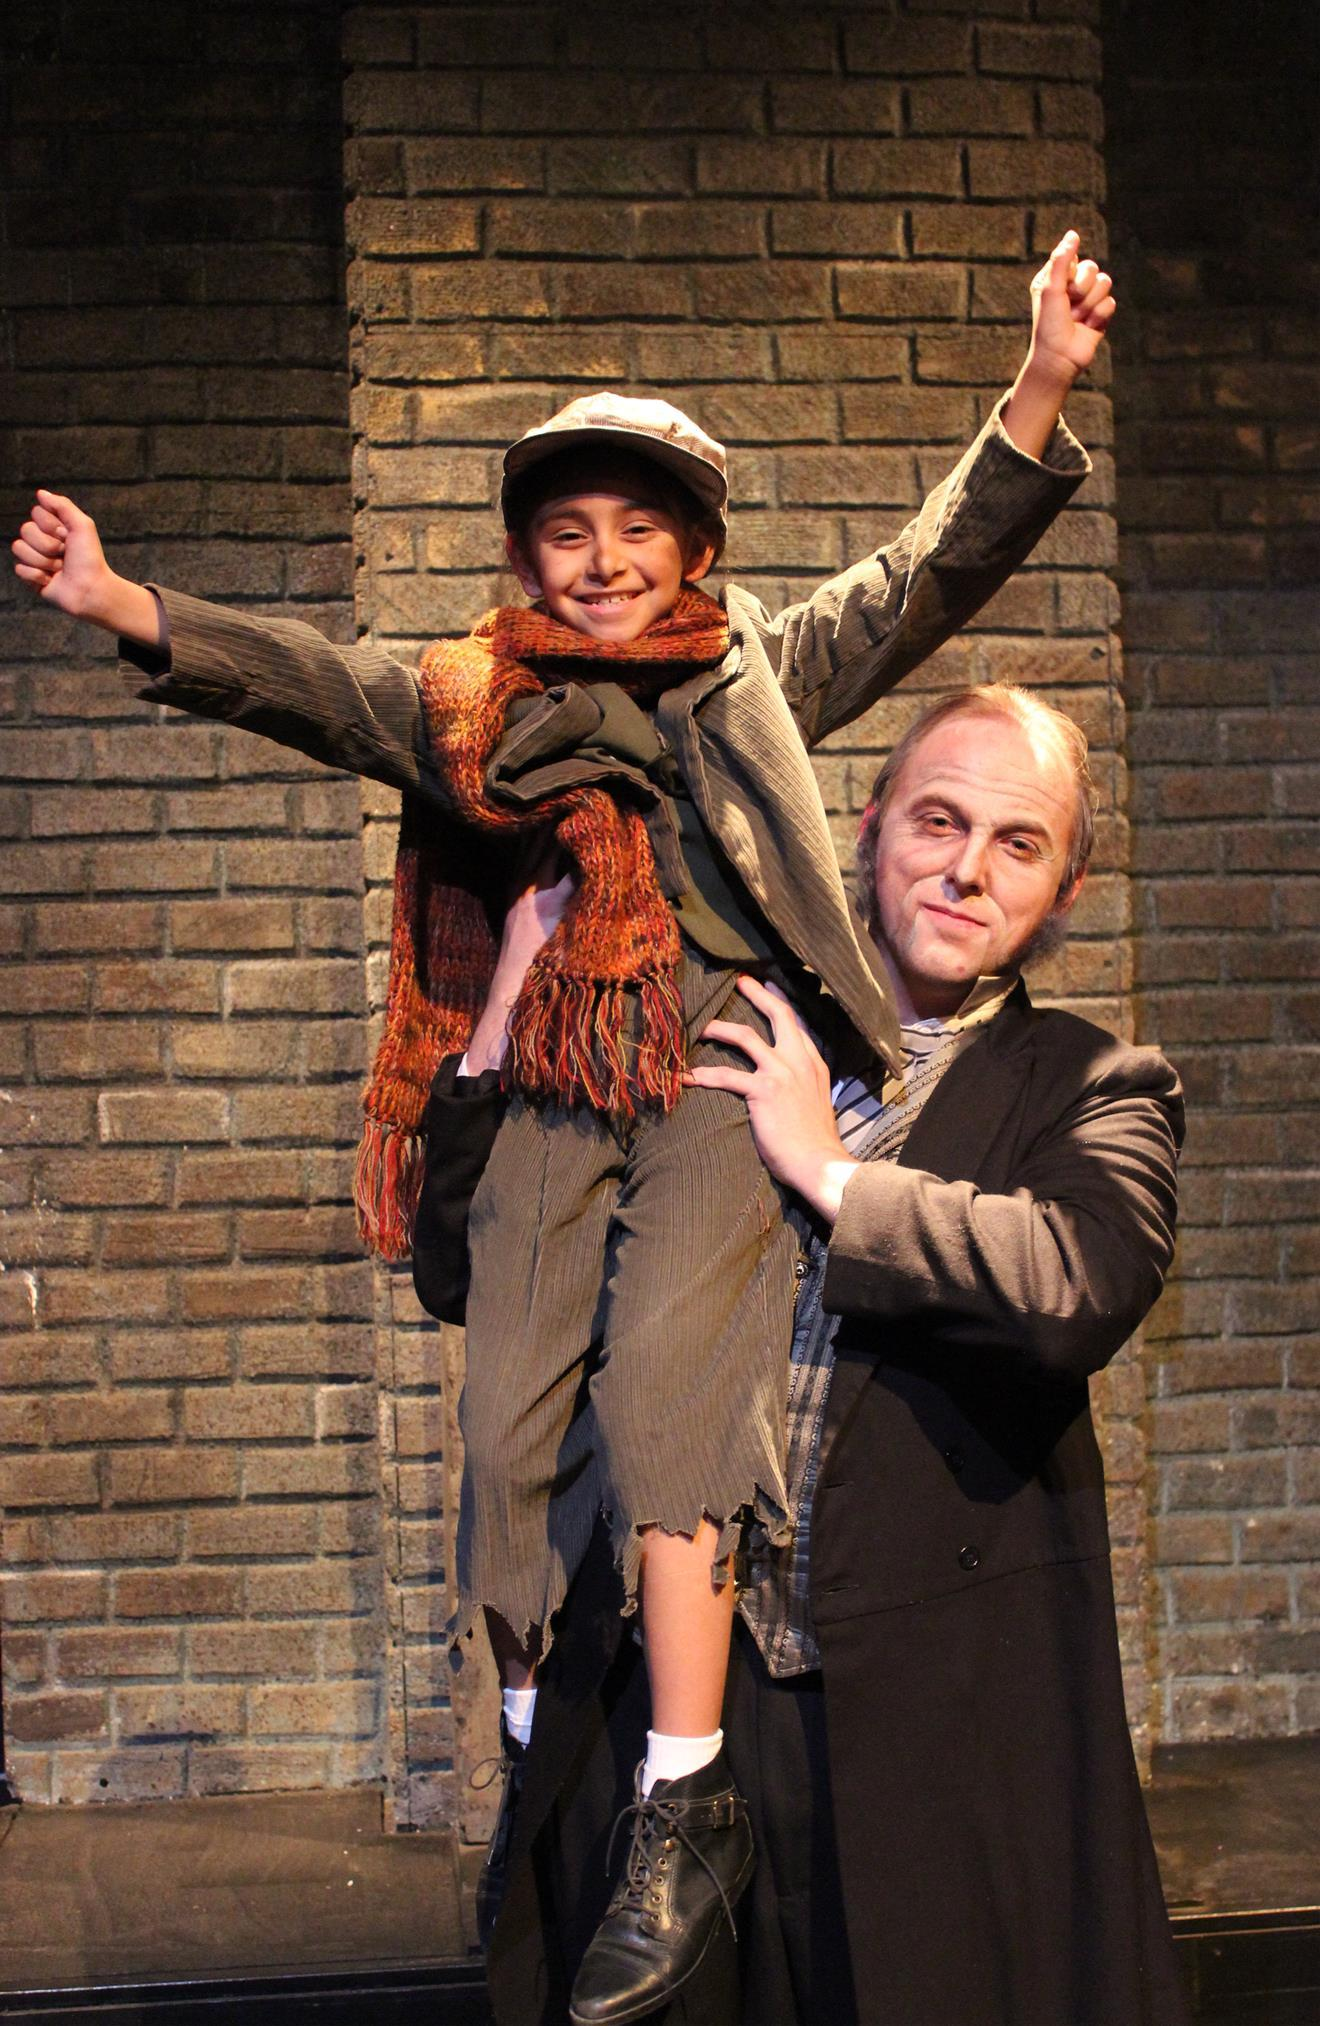 A Christmas Carol' will open on Dec. 15 at 2:30 p.m. It will continue Dec. 20 at 8:00 p.m. and Dec. 21 at 2:30 p.m. and 8:00 p.m.